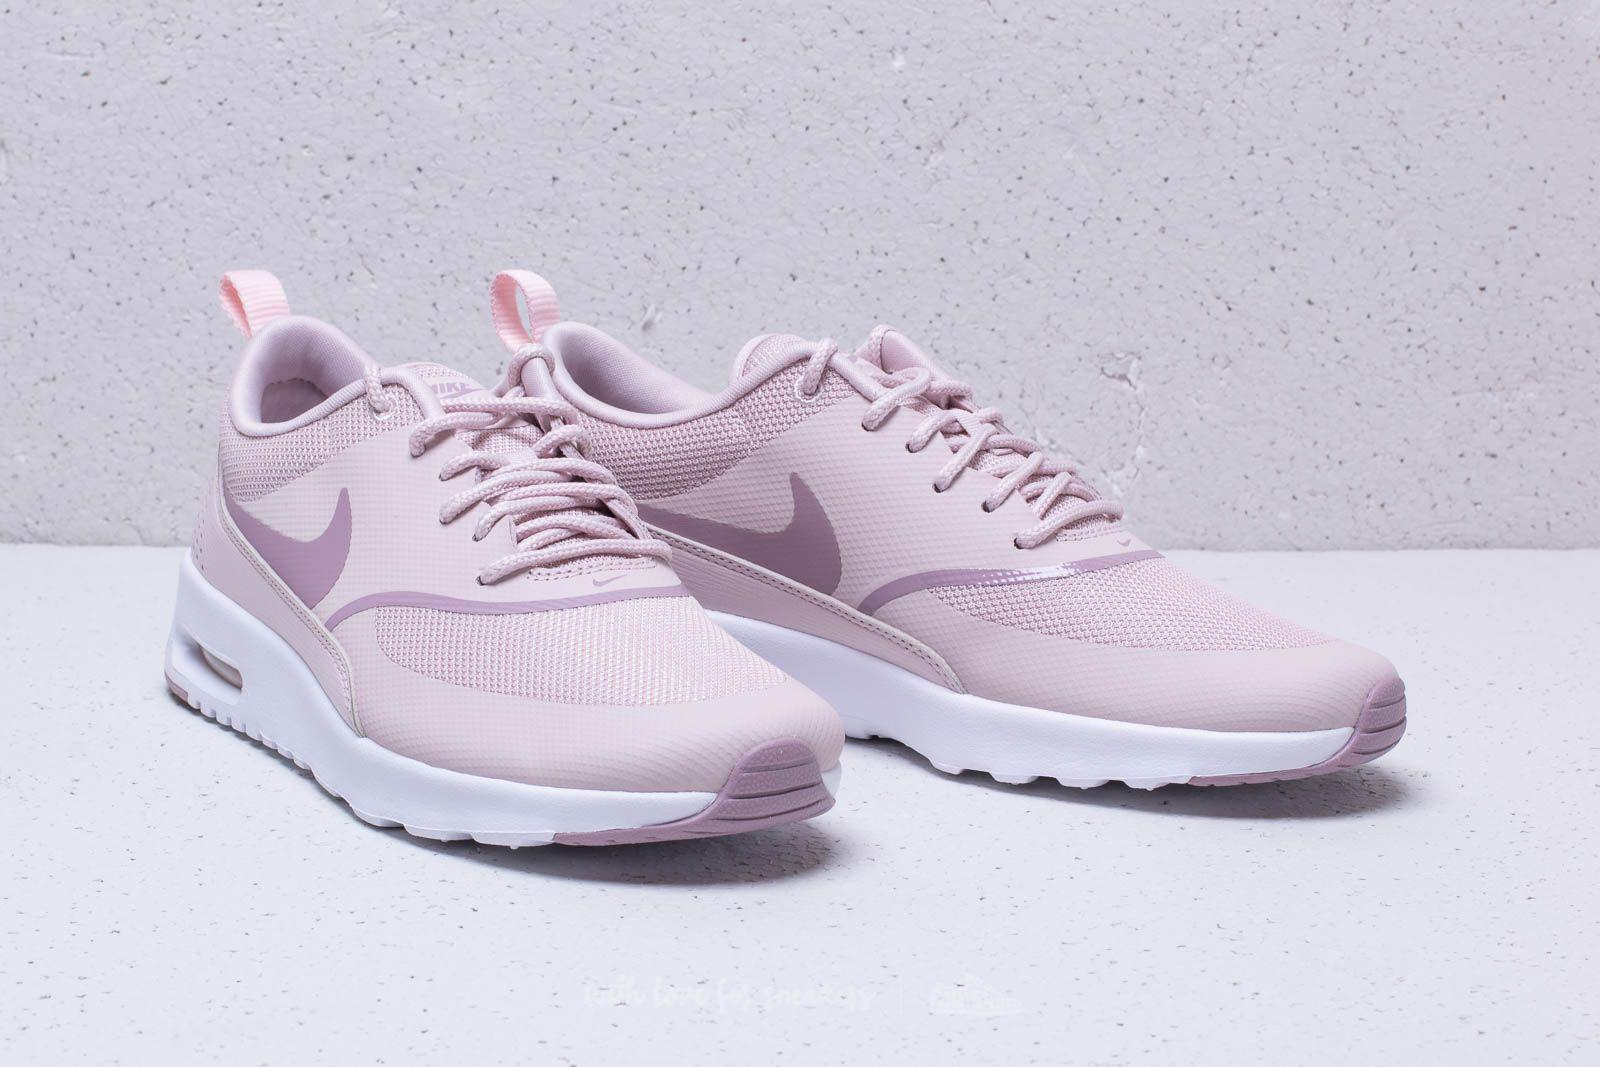 Wmns Air Max Thea Barely Rose Elemental Rose